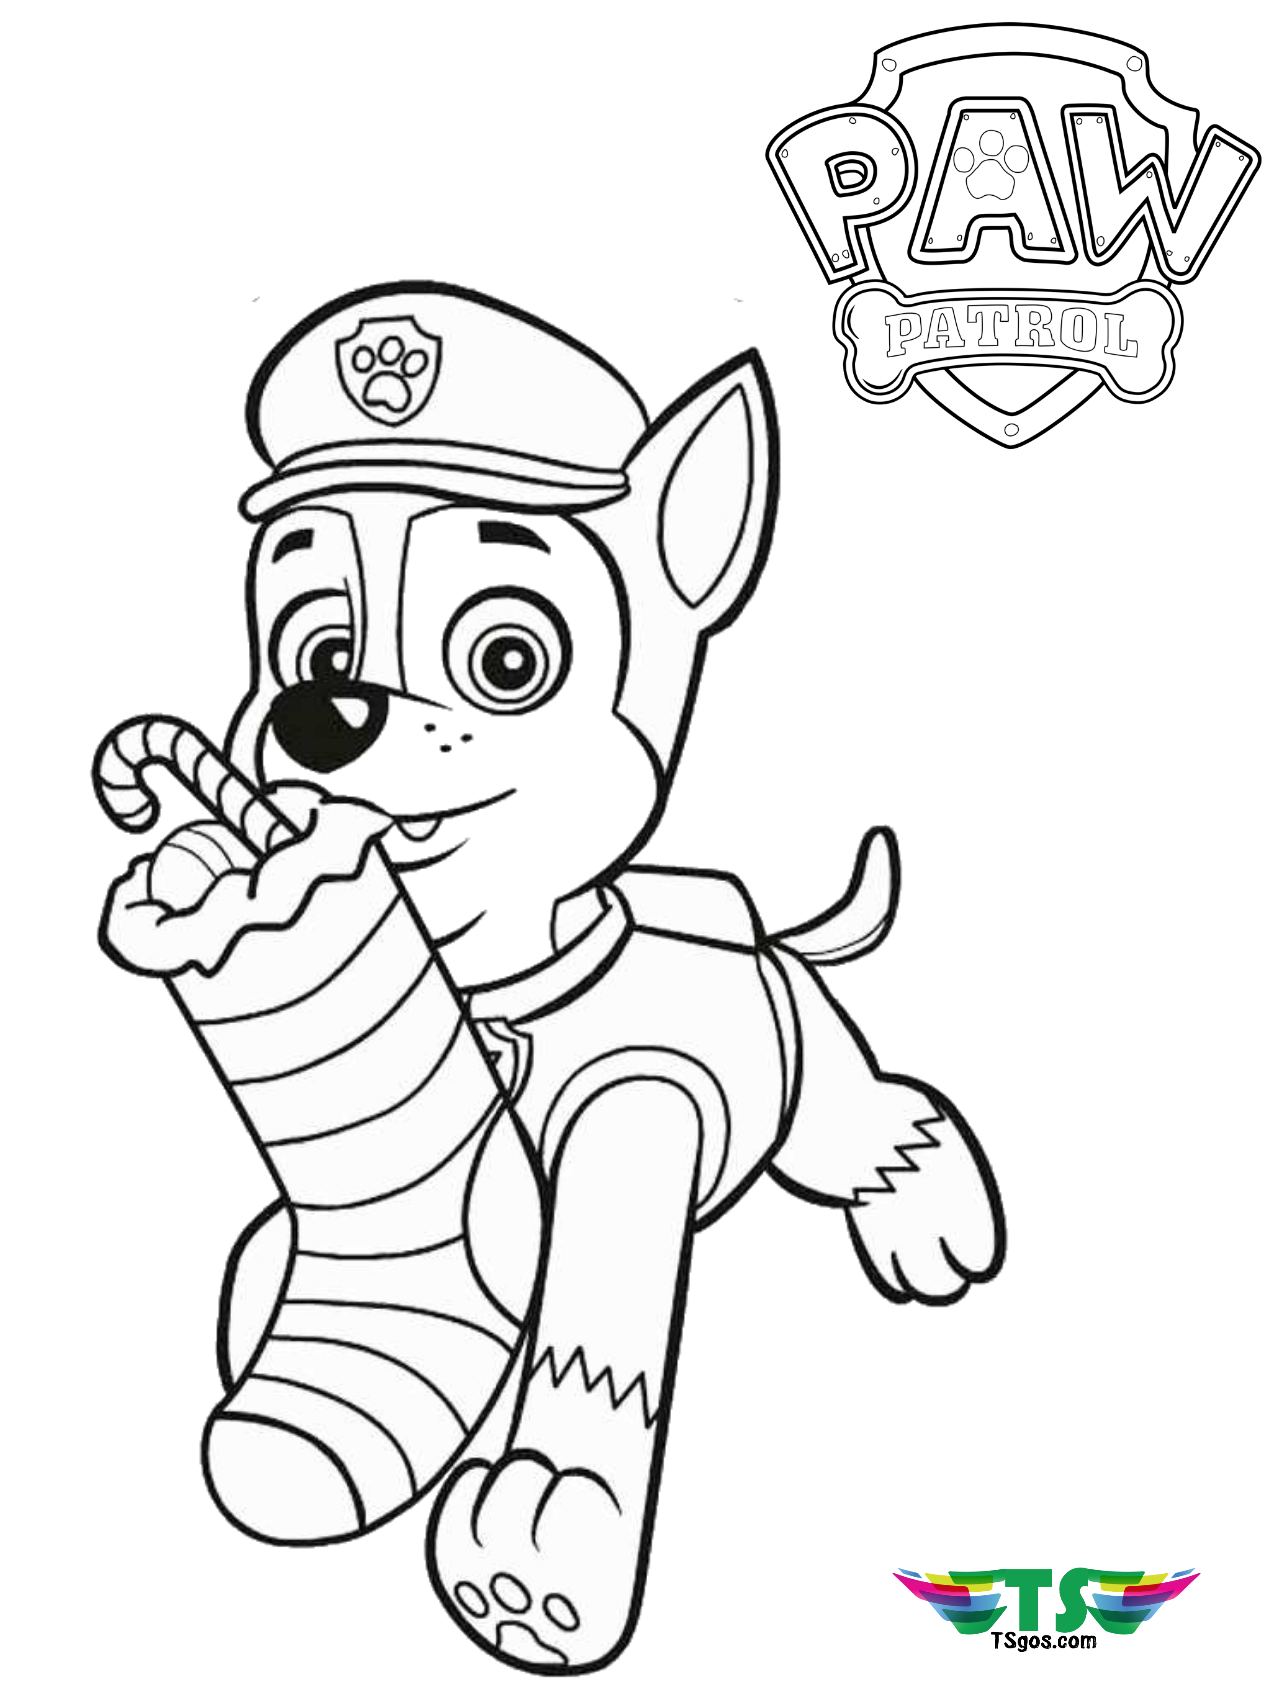 paw patrol free coloring pages printable free paw patrol coloring pages happiness is homemade paw coloring pages printable patrol free